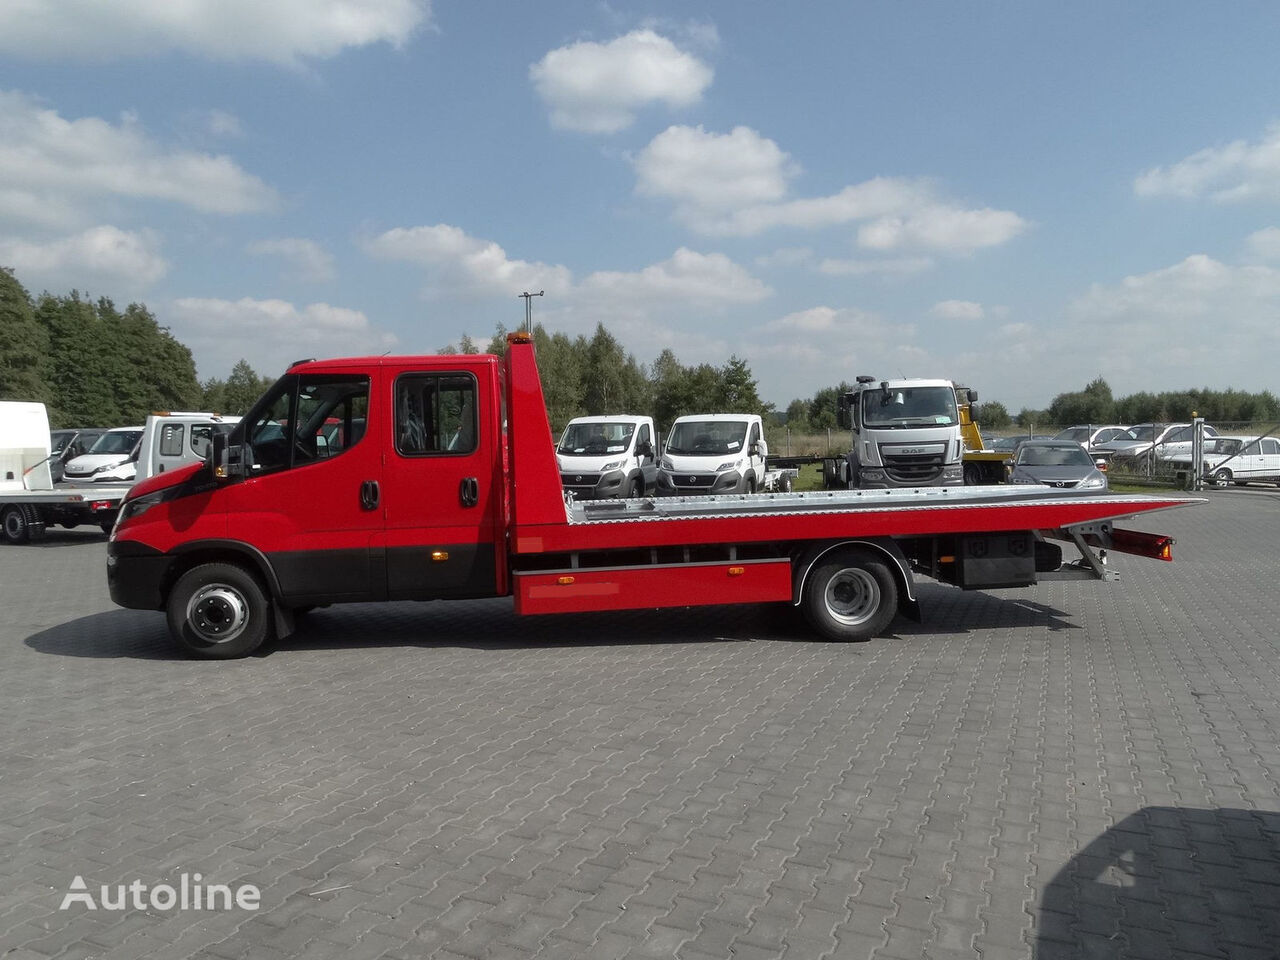 new IVECO Daíly 70C18/P Schiebeplateau AHK Finanzierung tow truck